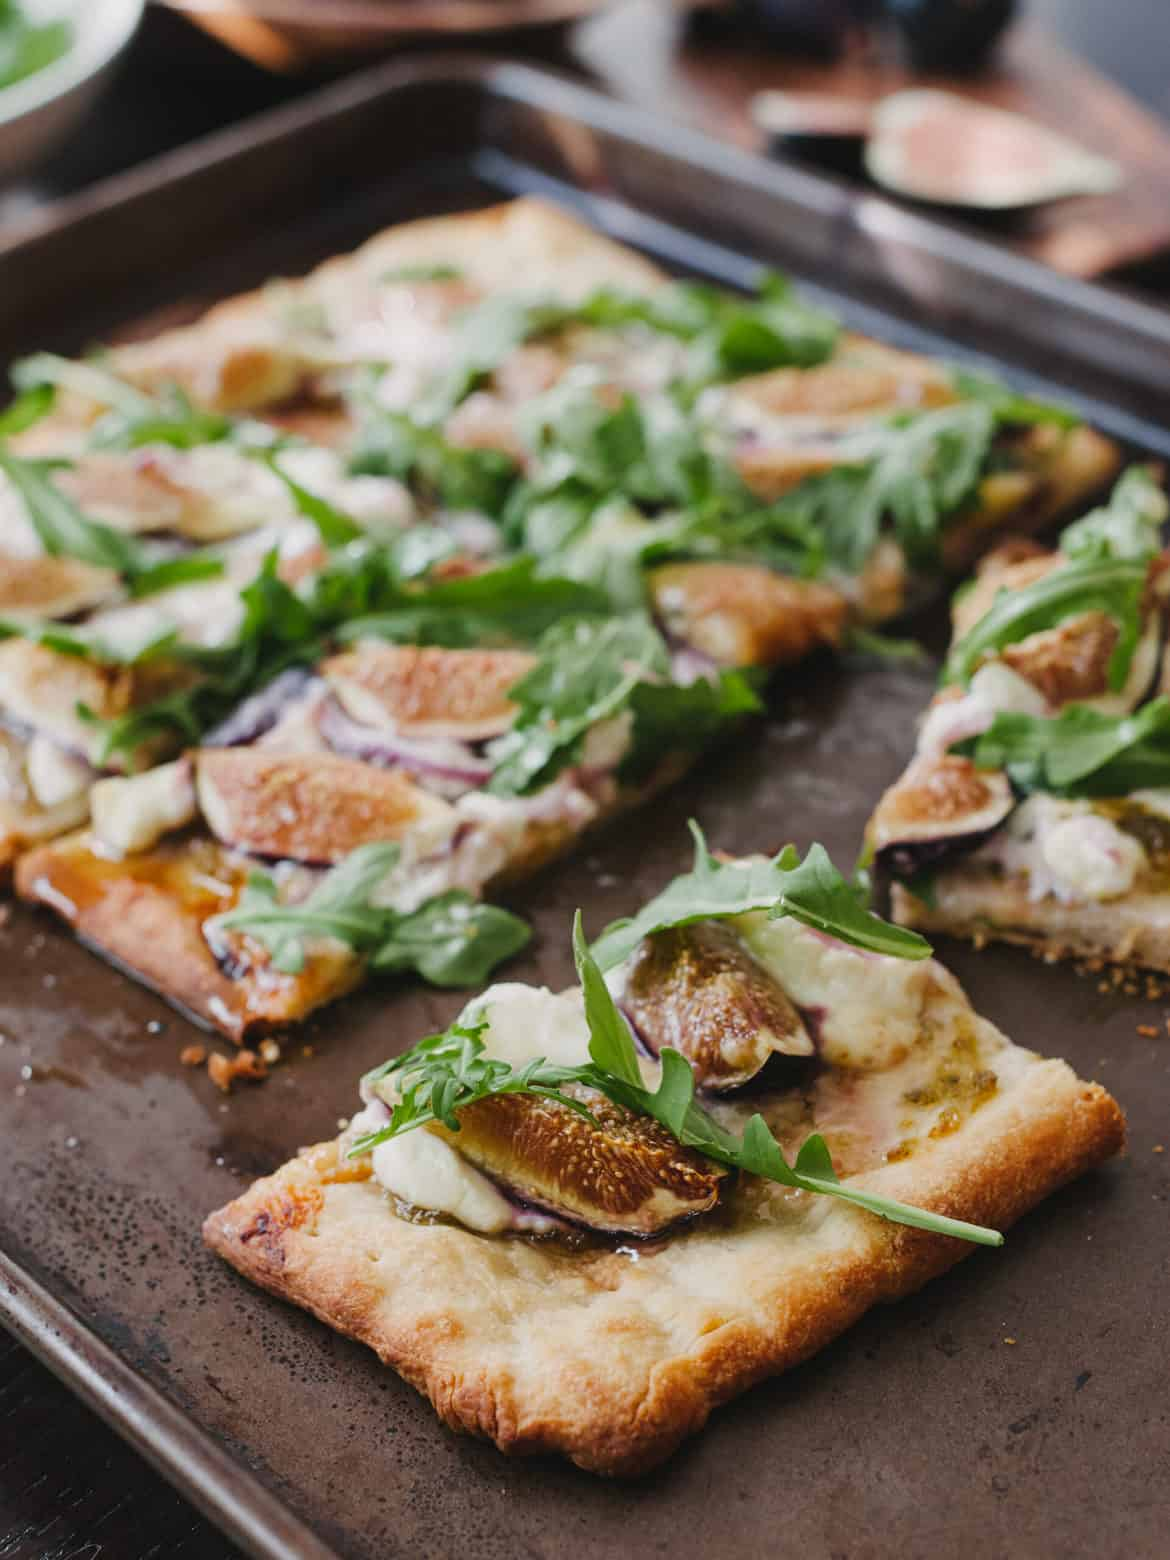 Slices of Fig, Jalapeño Jam & Blue Cheese Pizza on a baking sheet.